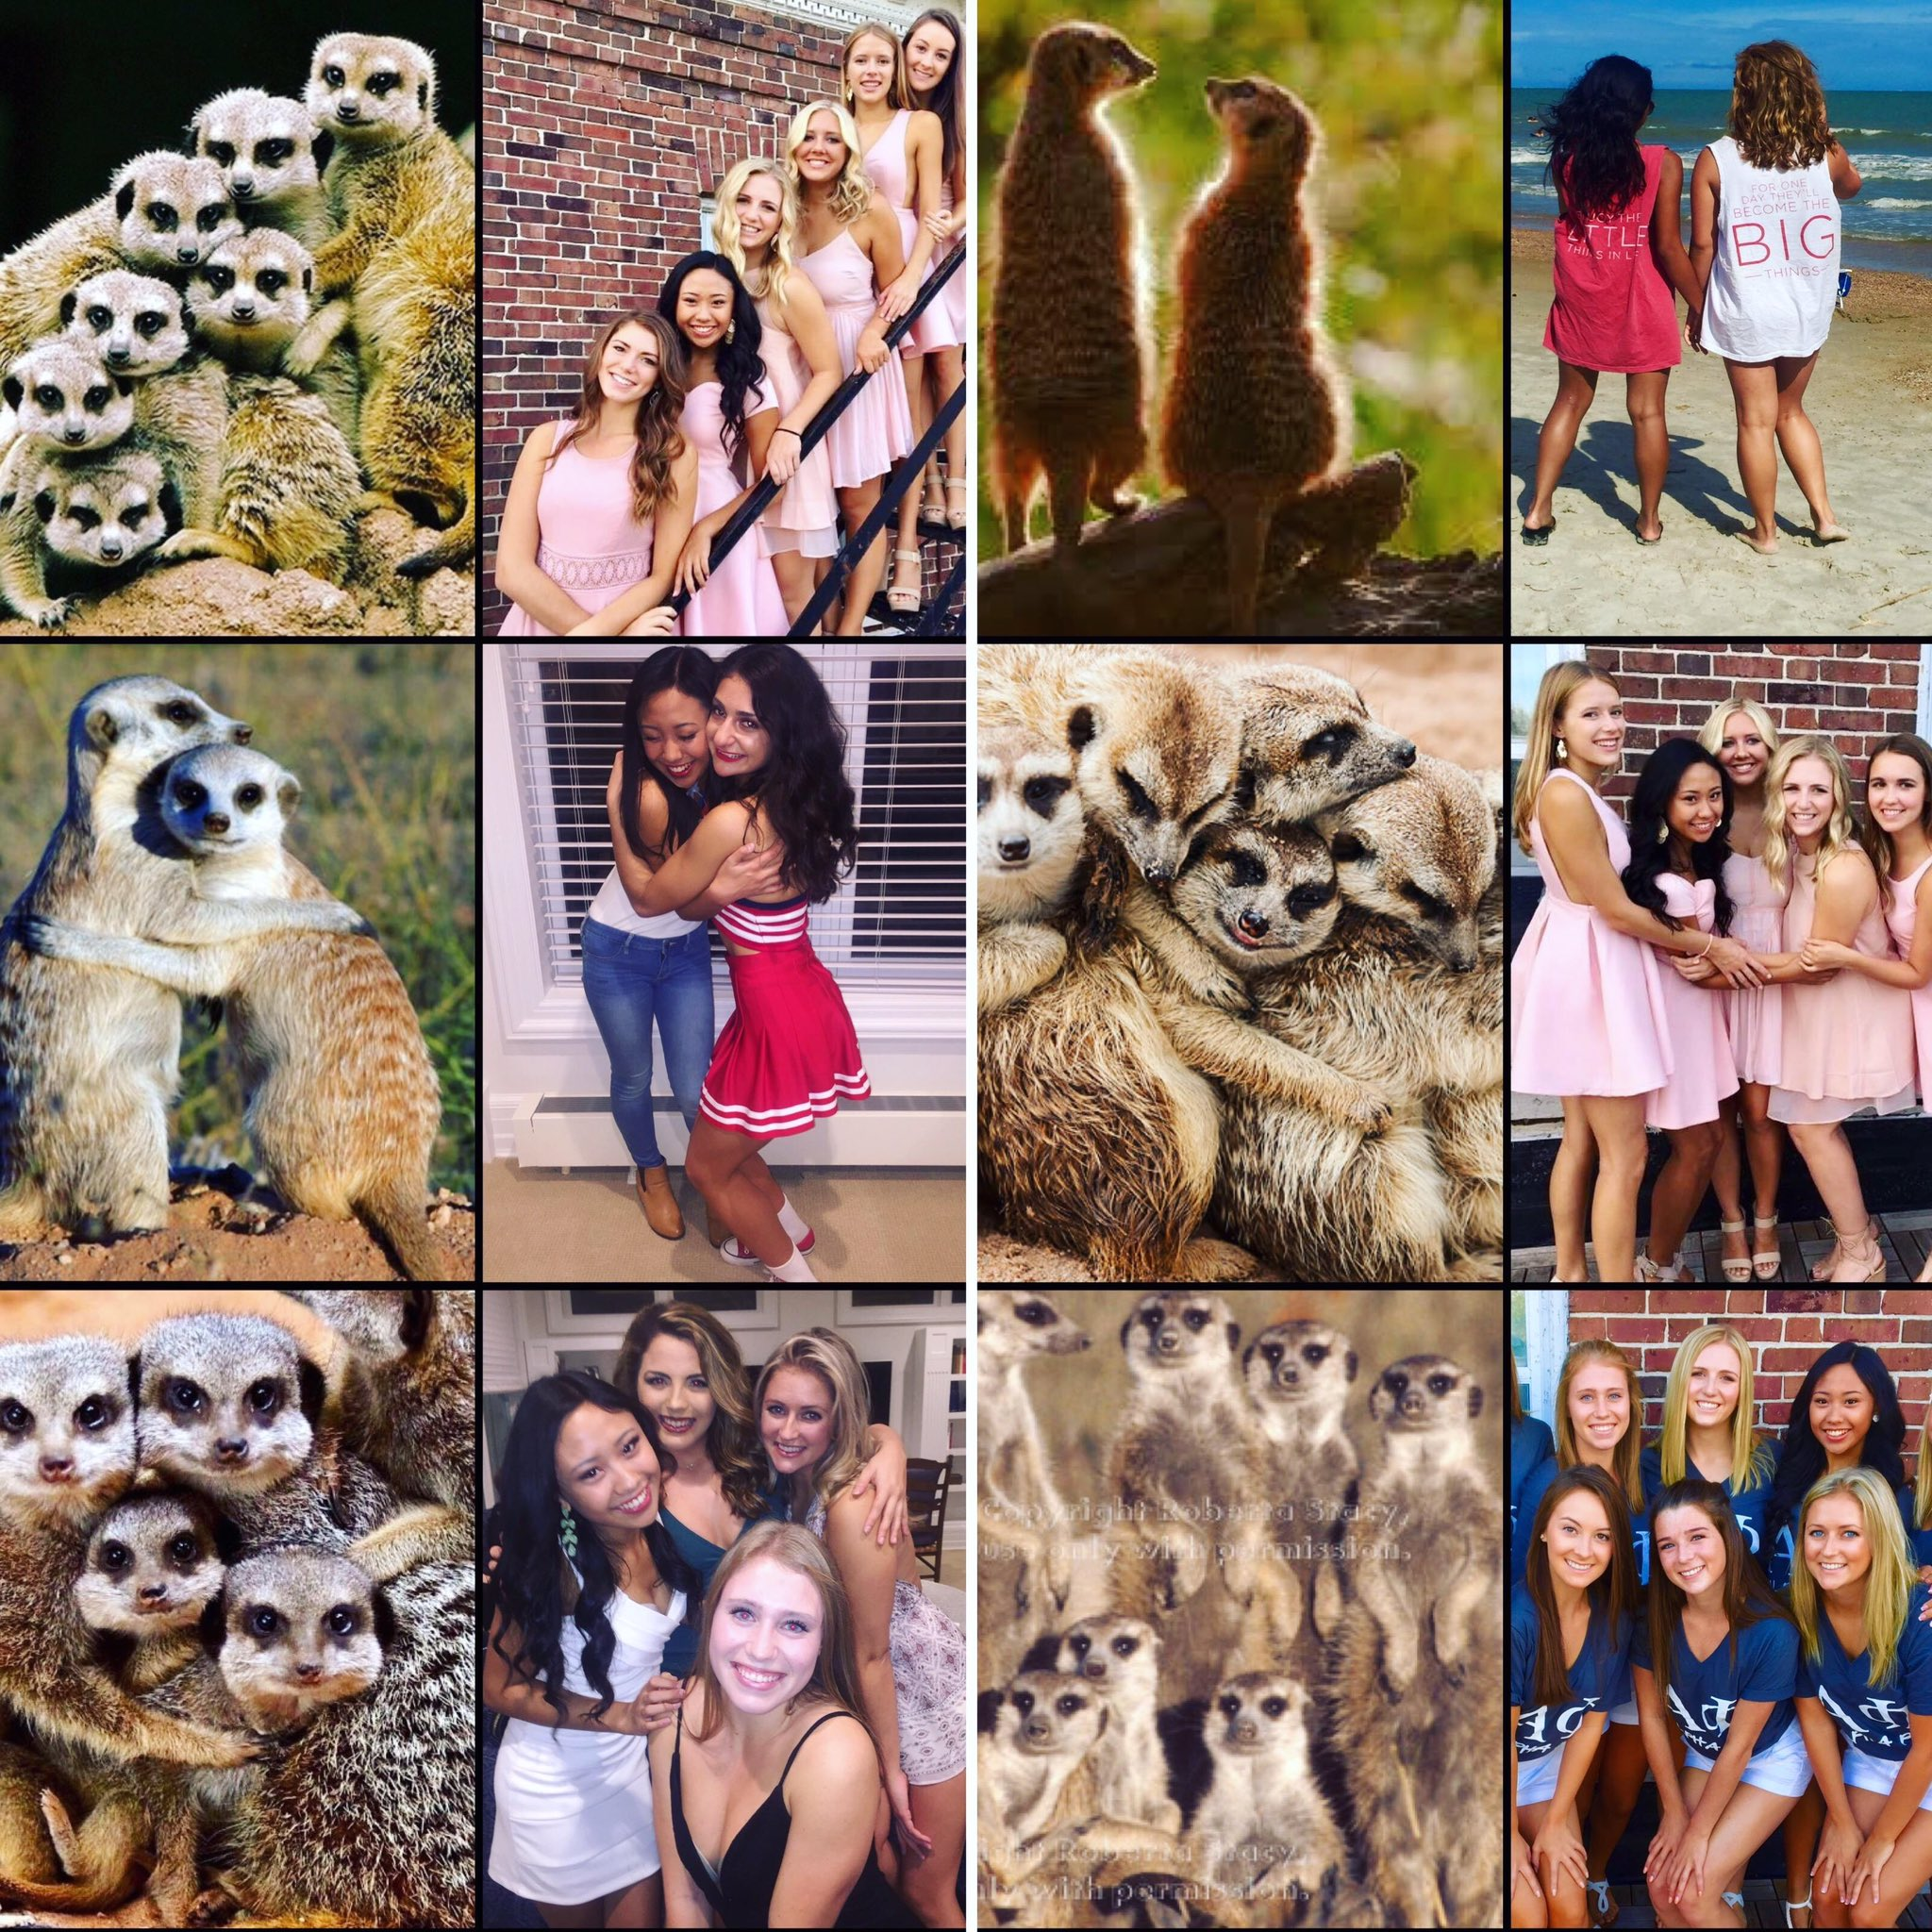 Sorority girls pose exactly like meerkats in pictures https://t.co/3kzfEdro90